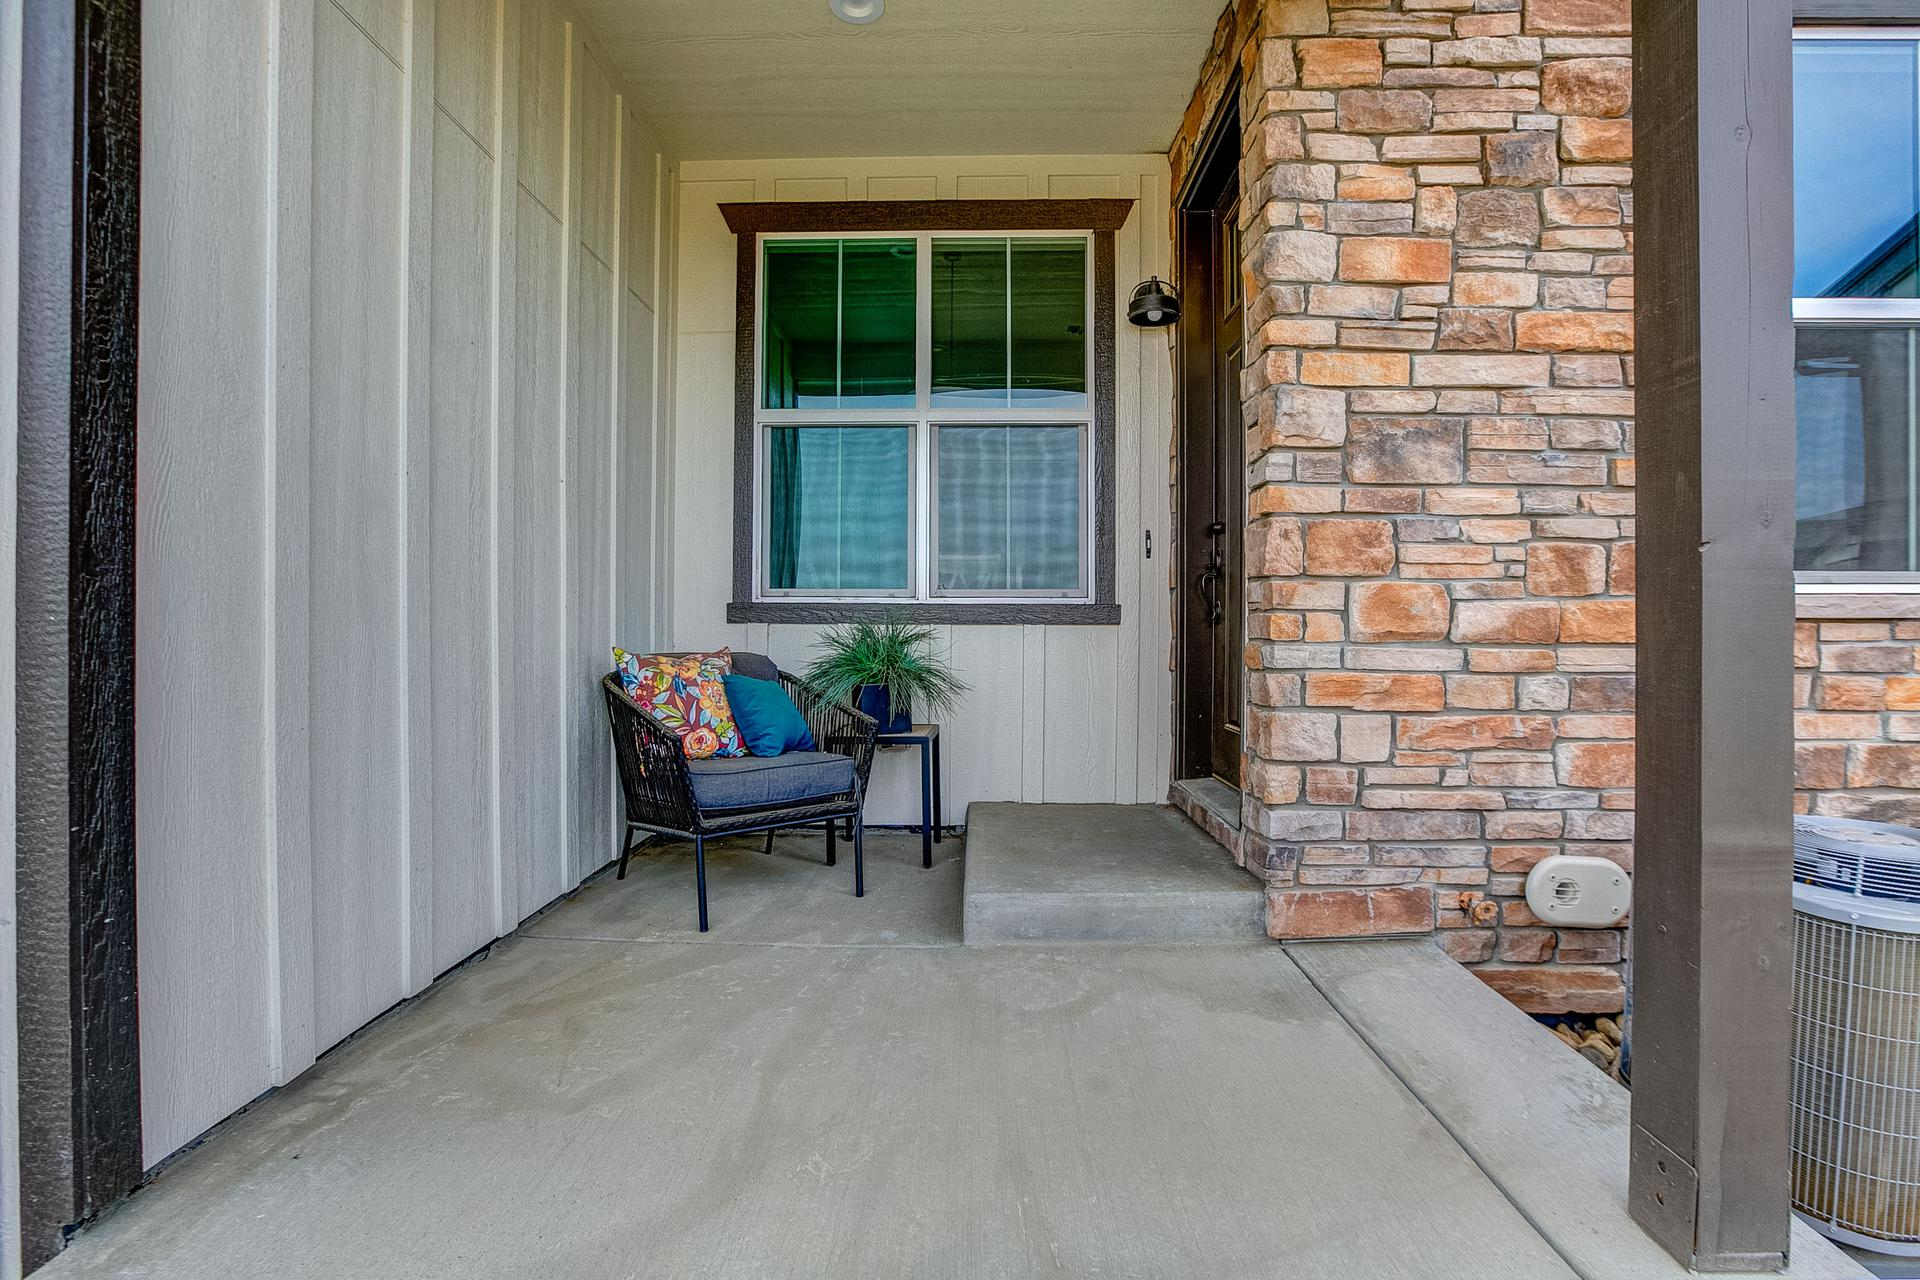 Porch. 2br New Home in Windsor, CO